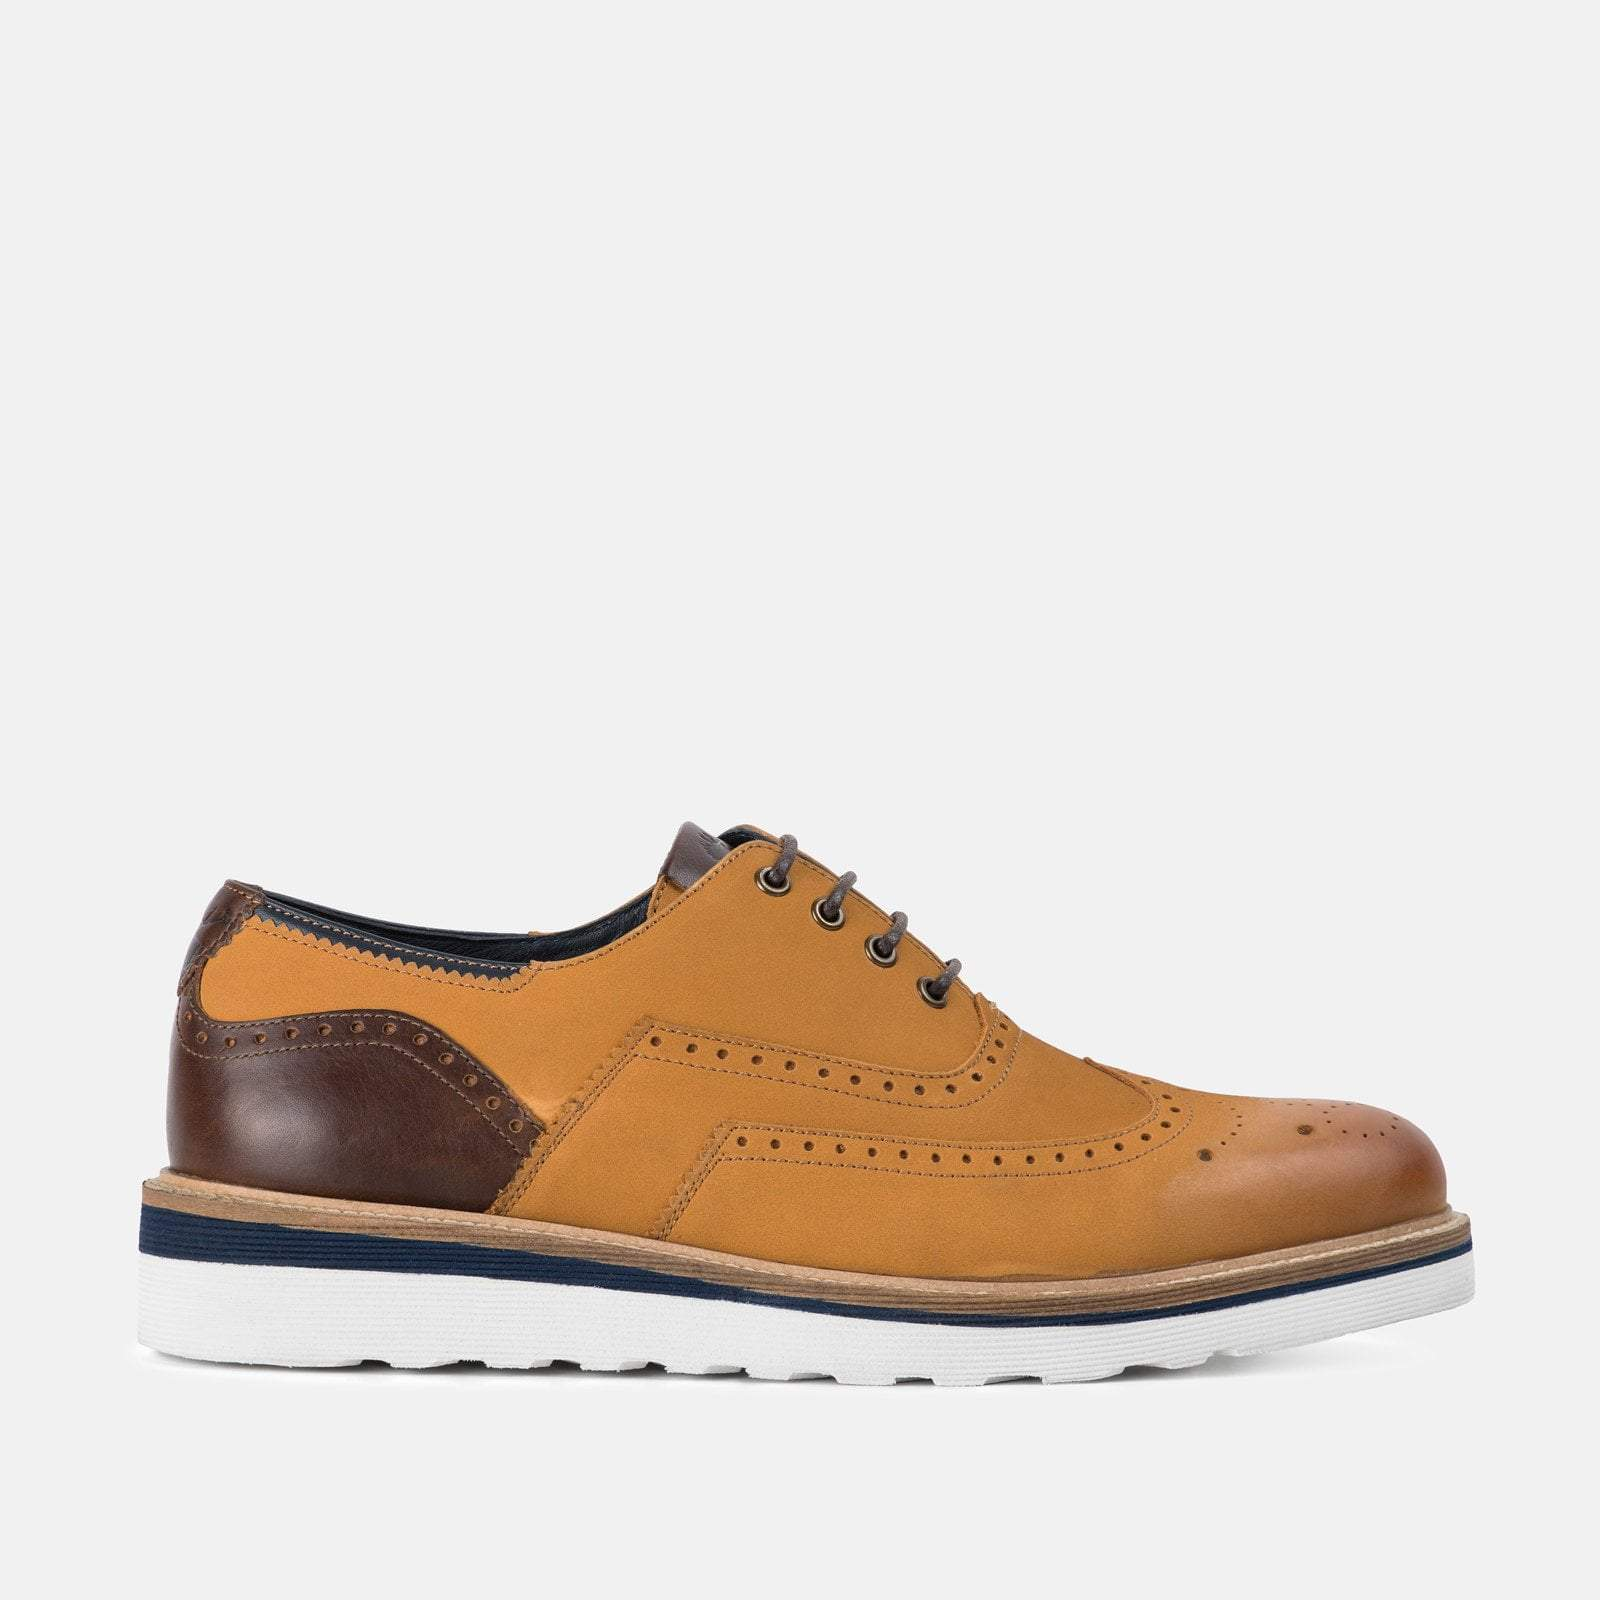 Goodwin Smith Footwear UK 6 / EURO 39 / US 7 / Tan / Nubuck HORNBY TAN